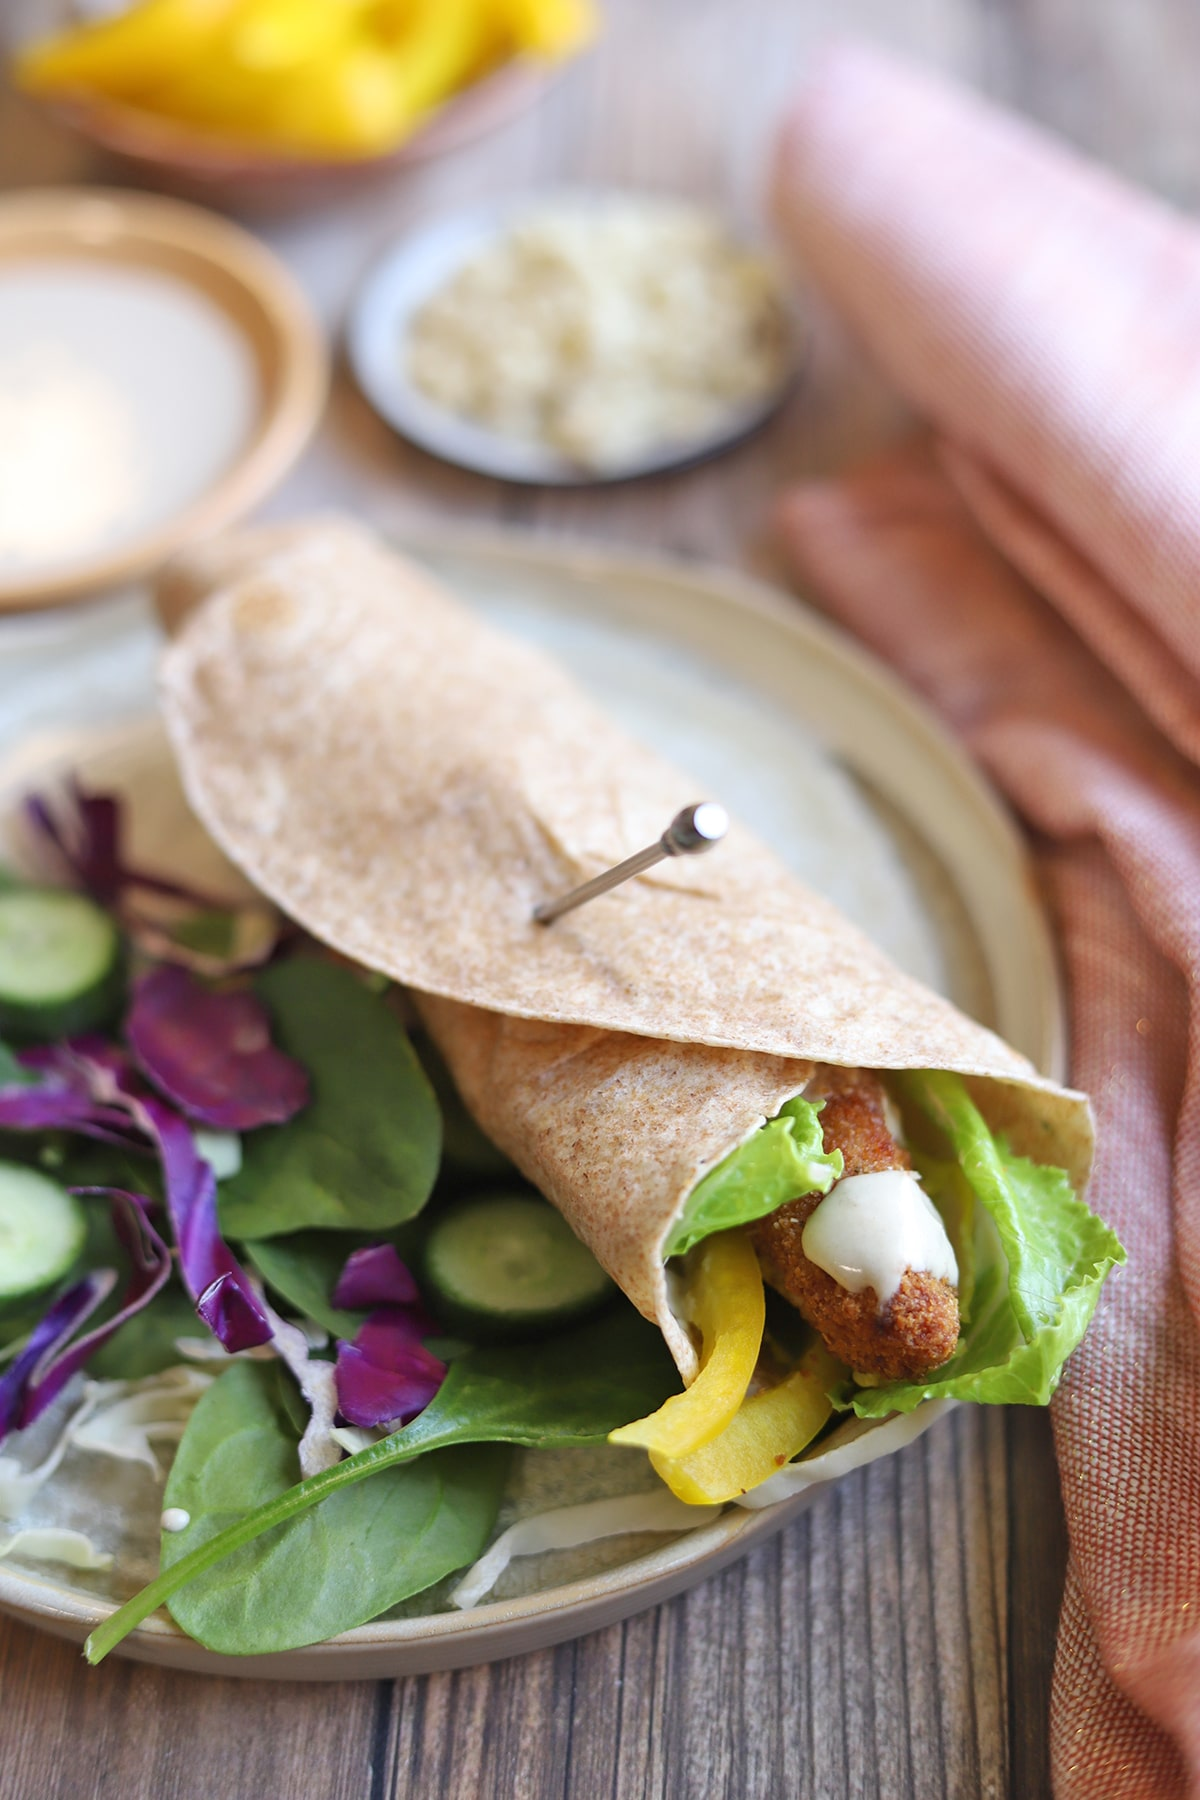 Vegan wrap with chick'n strips on plate by salad.